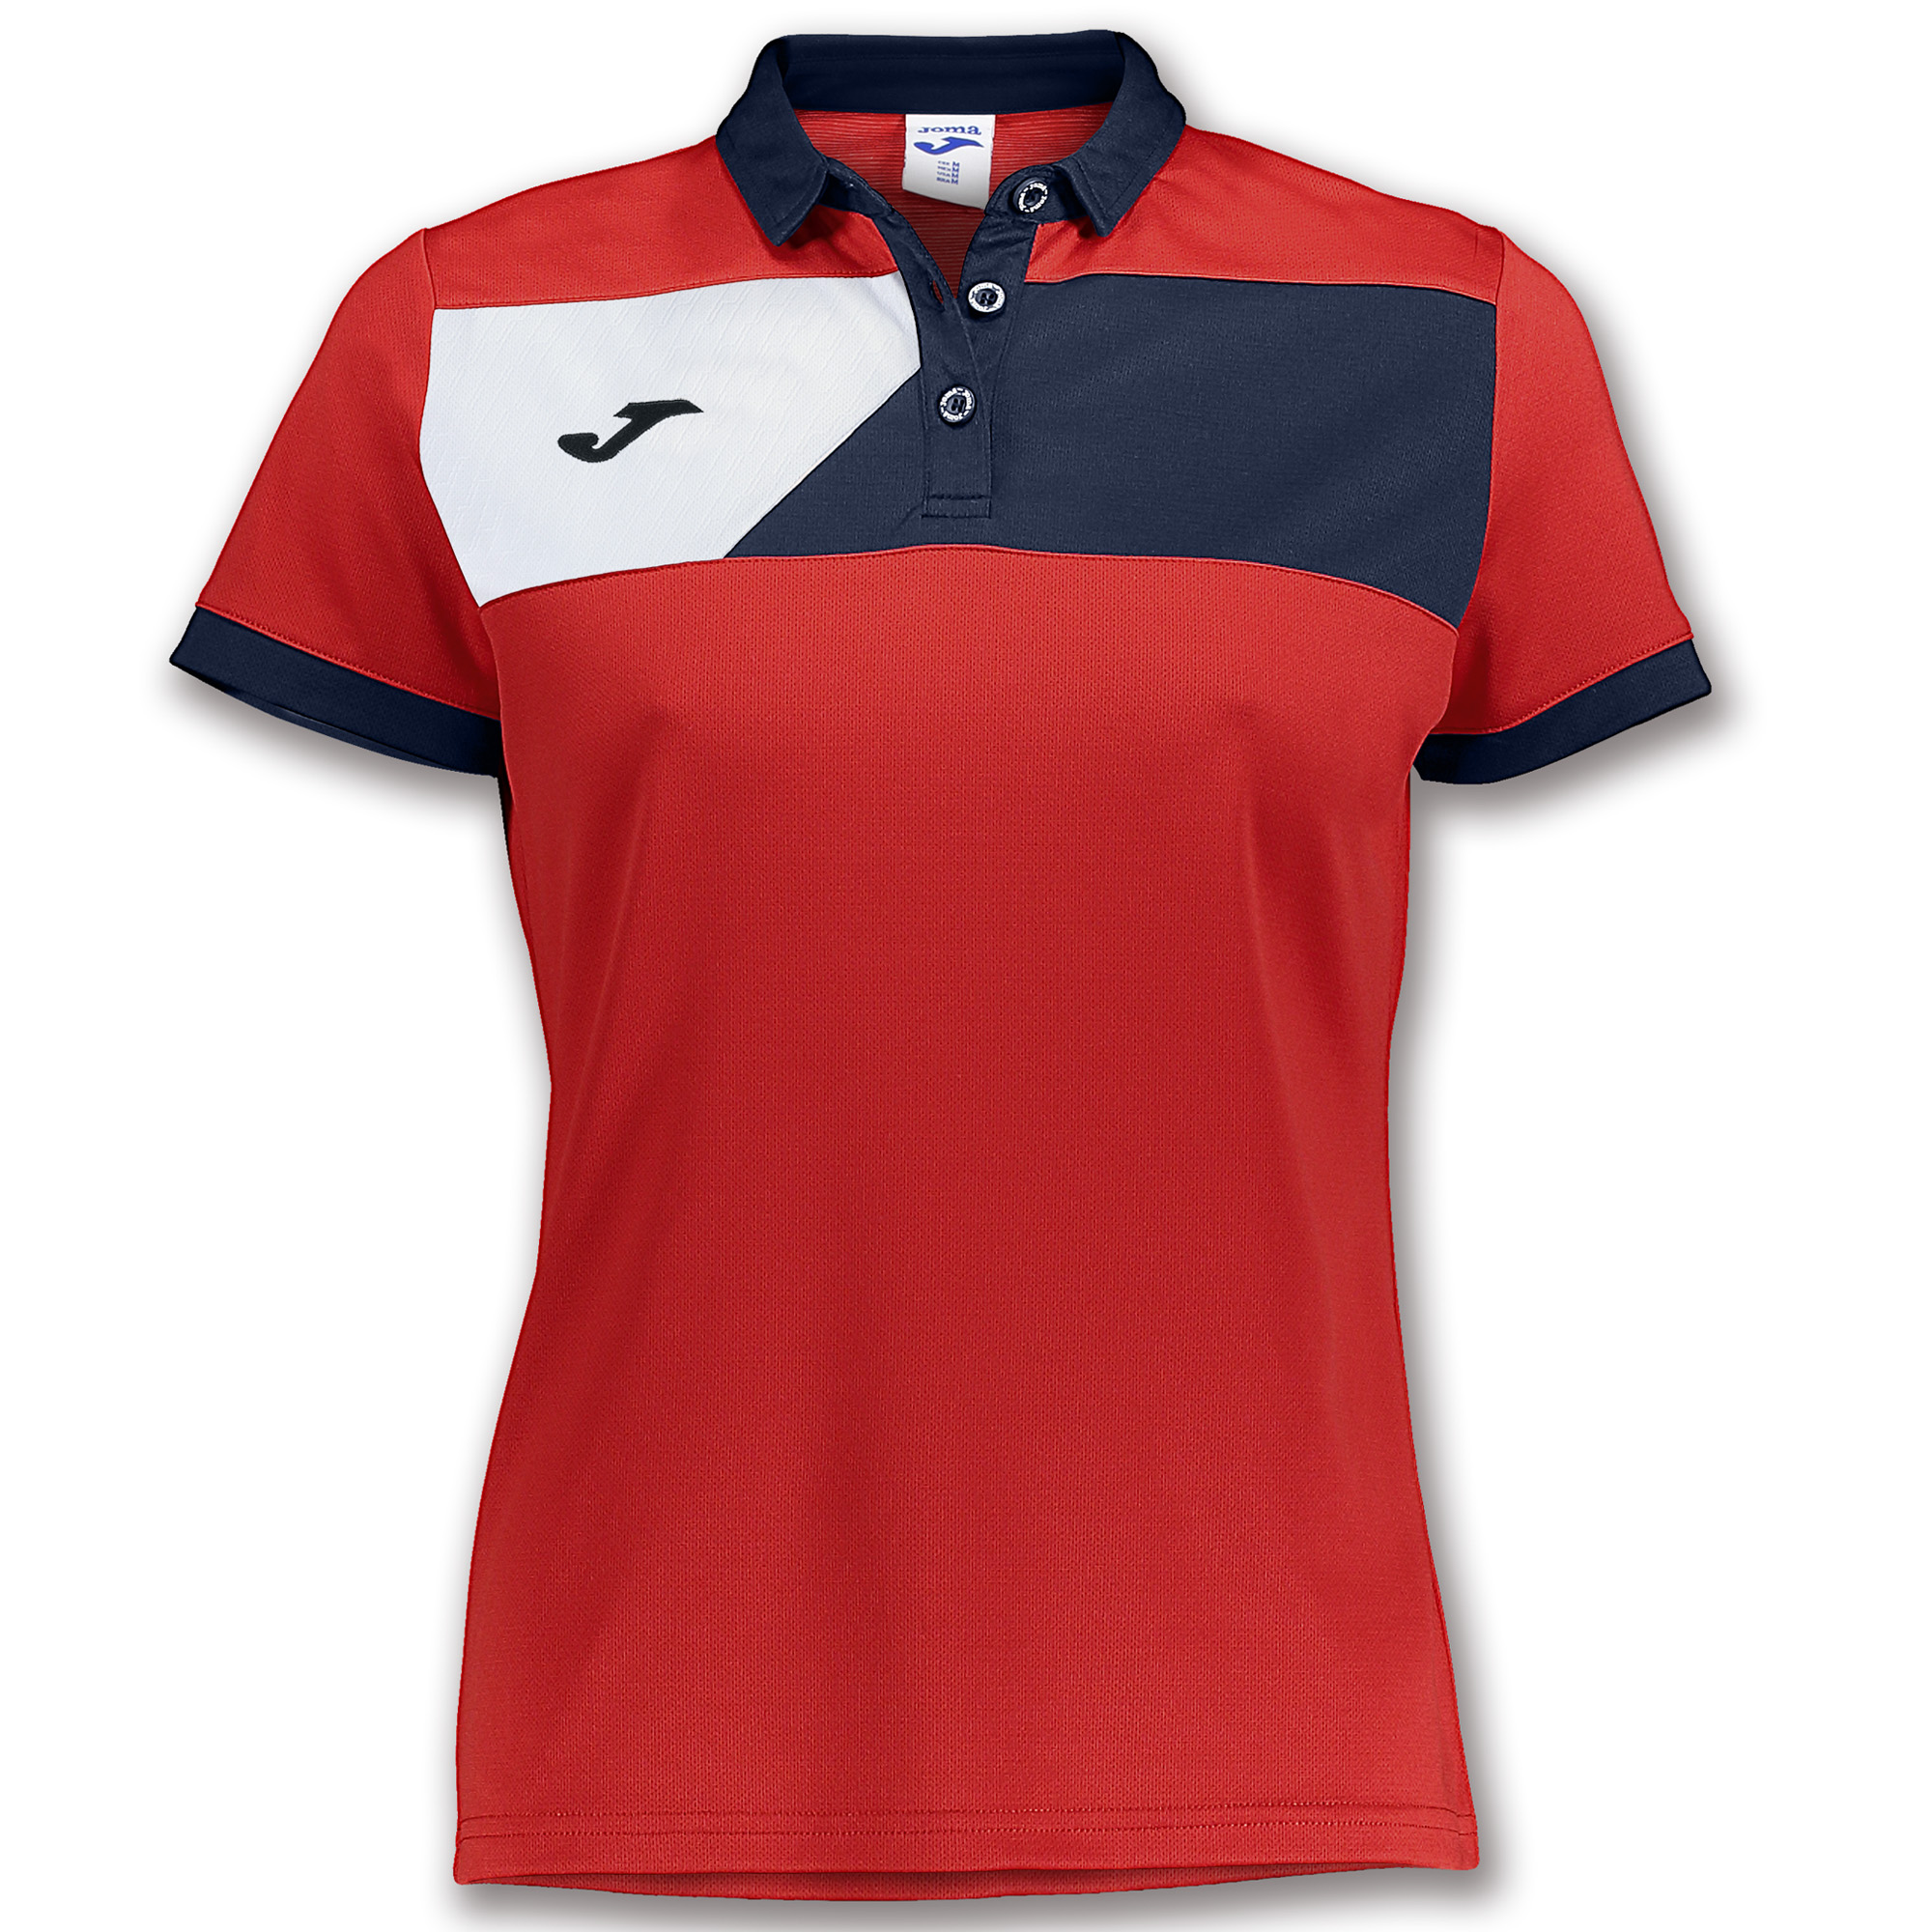 91d403bb87e1 S S POLO SHIRT CREW II RED-NAVY BLUE WOMEN - 1 ...